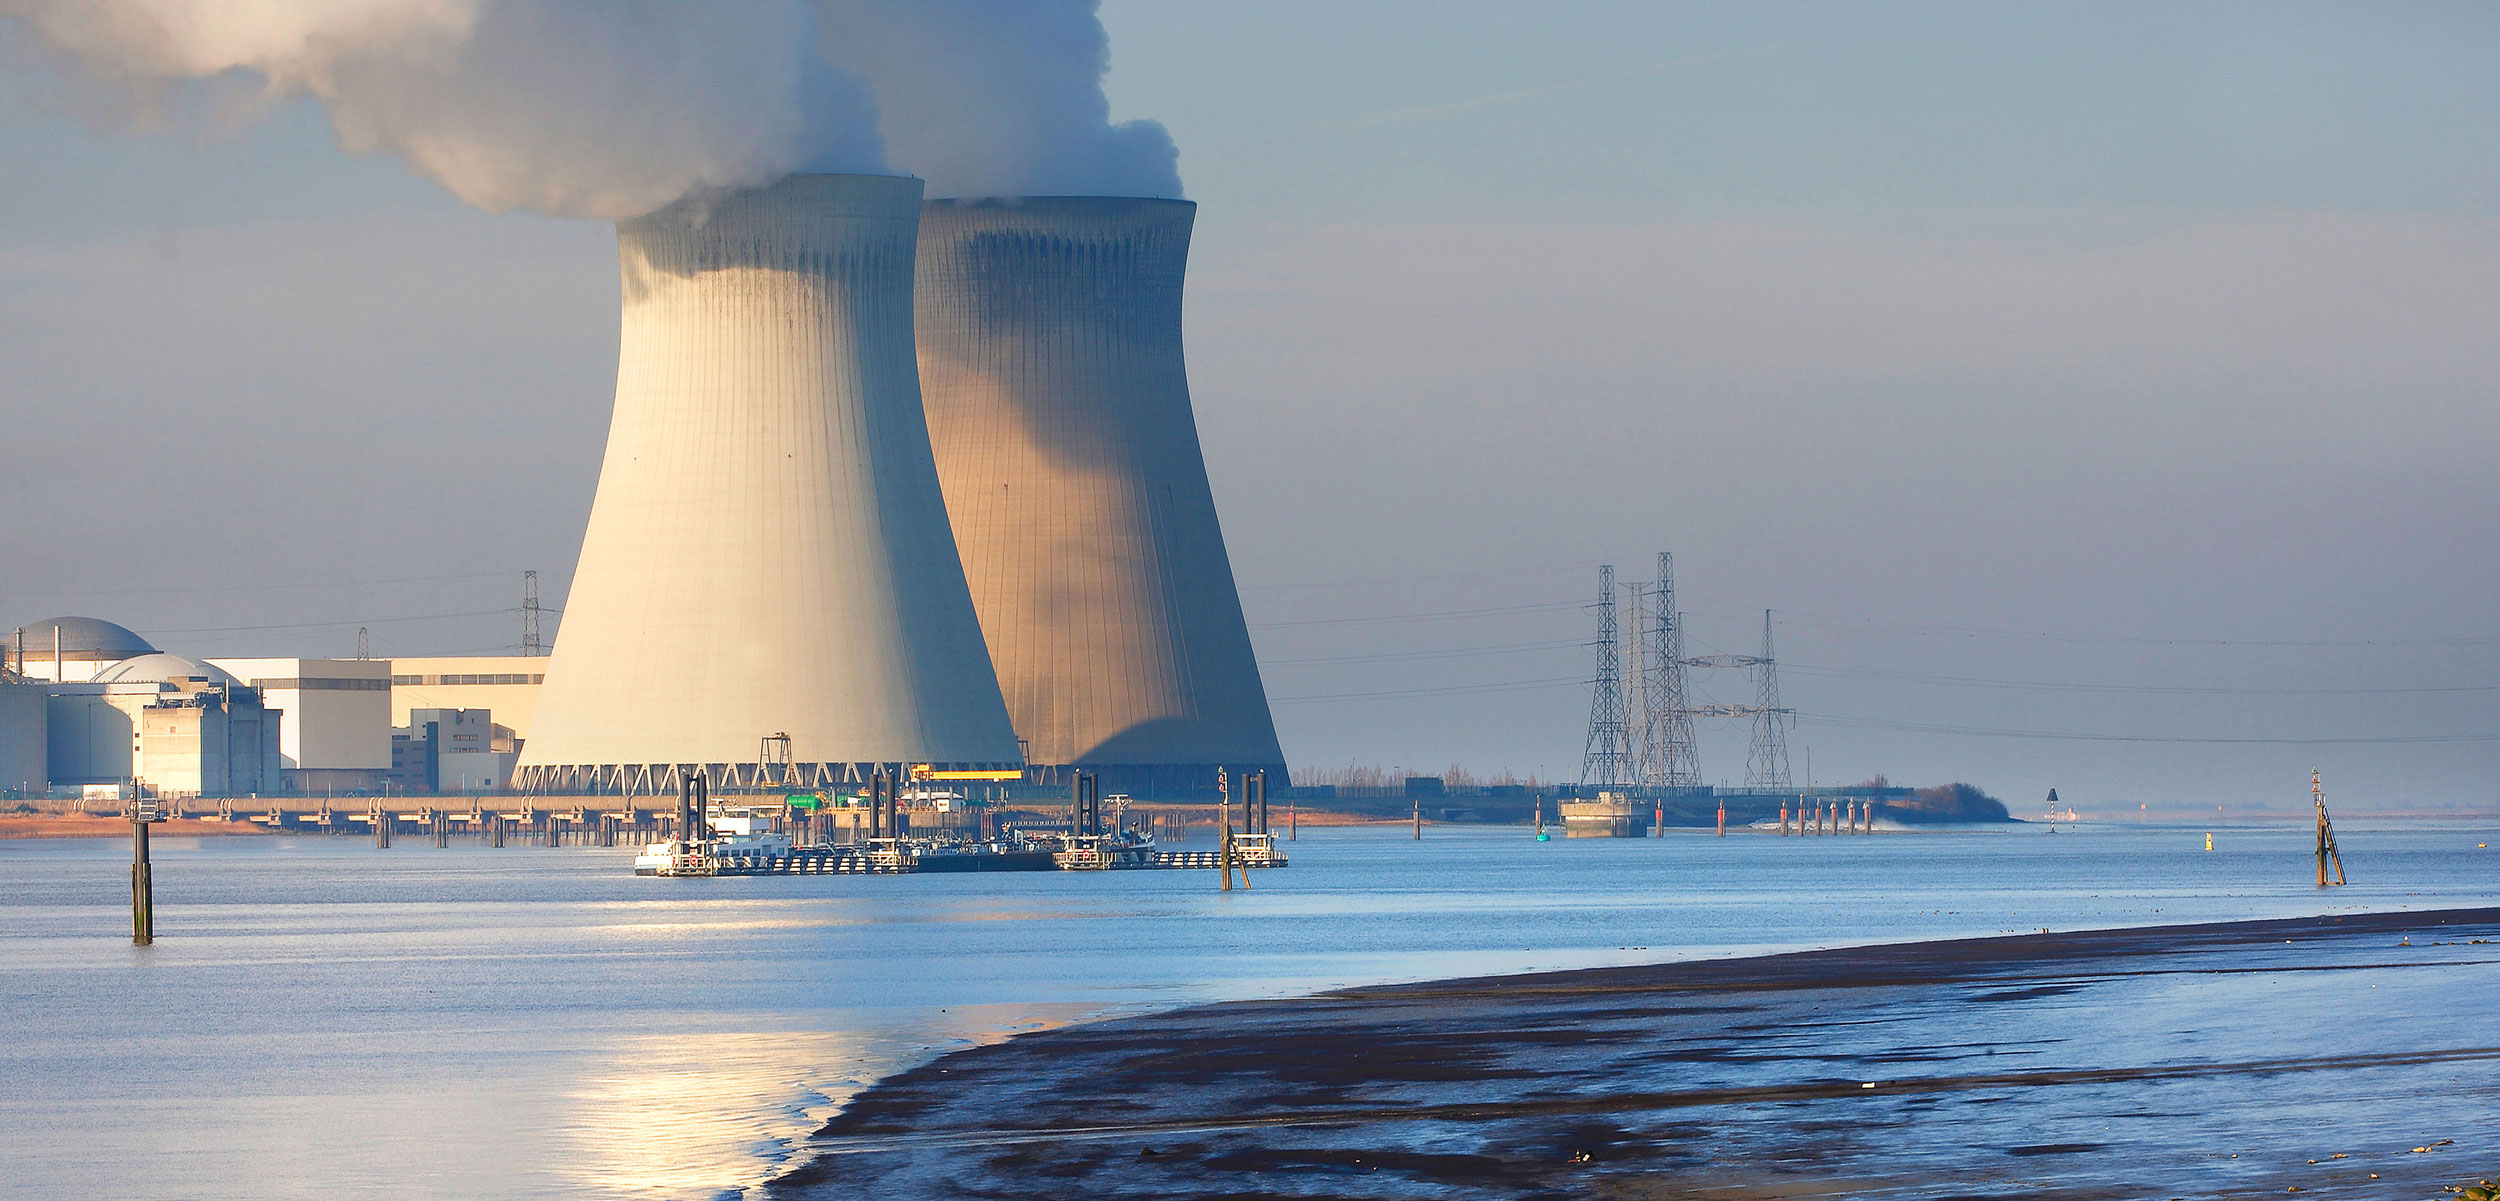 nuclear power plant at the coast, Belgium, Galgeschoor, Antwerp